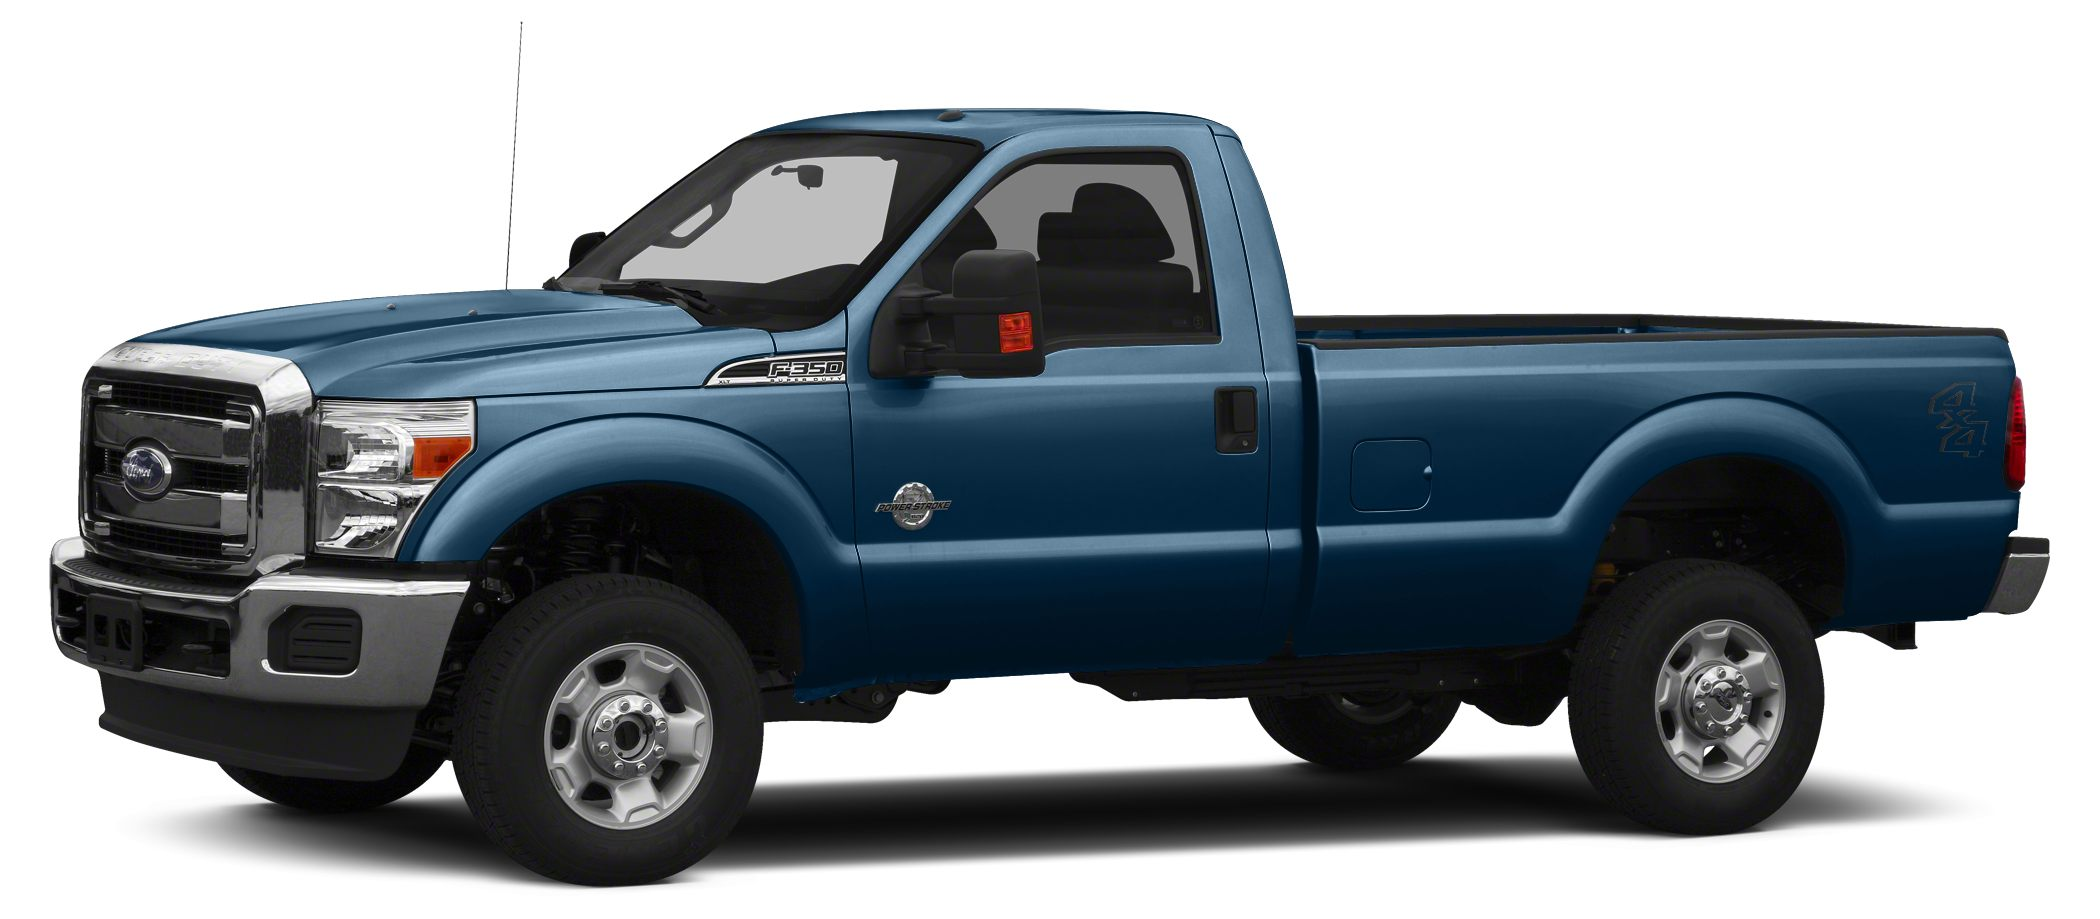 2015 Ford F-350 side